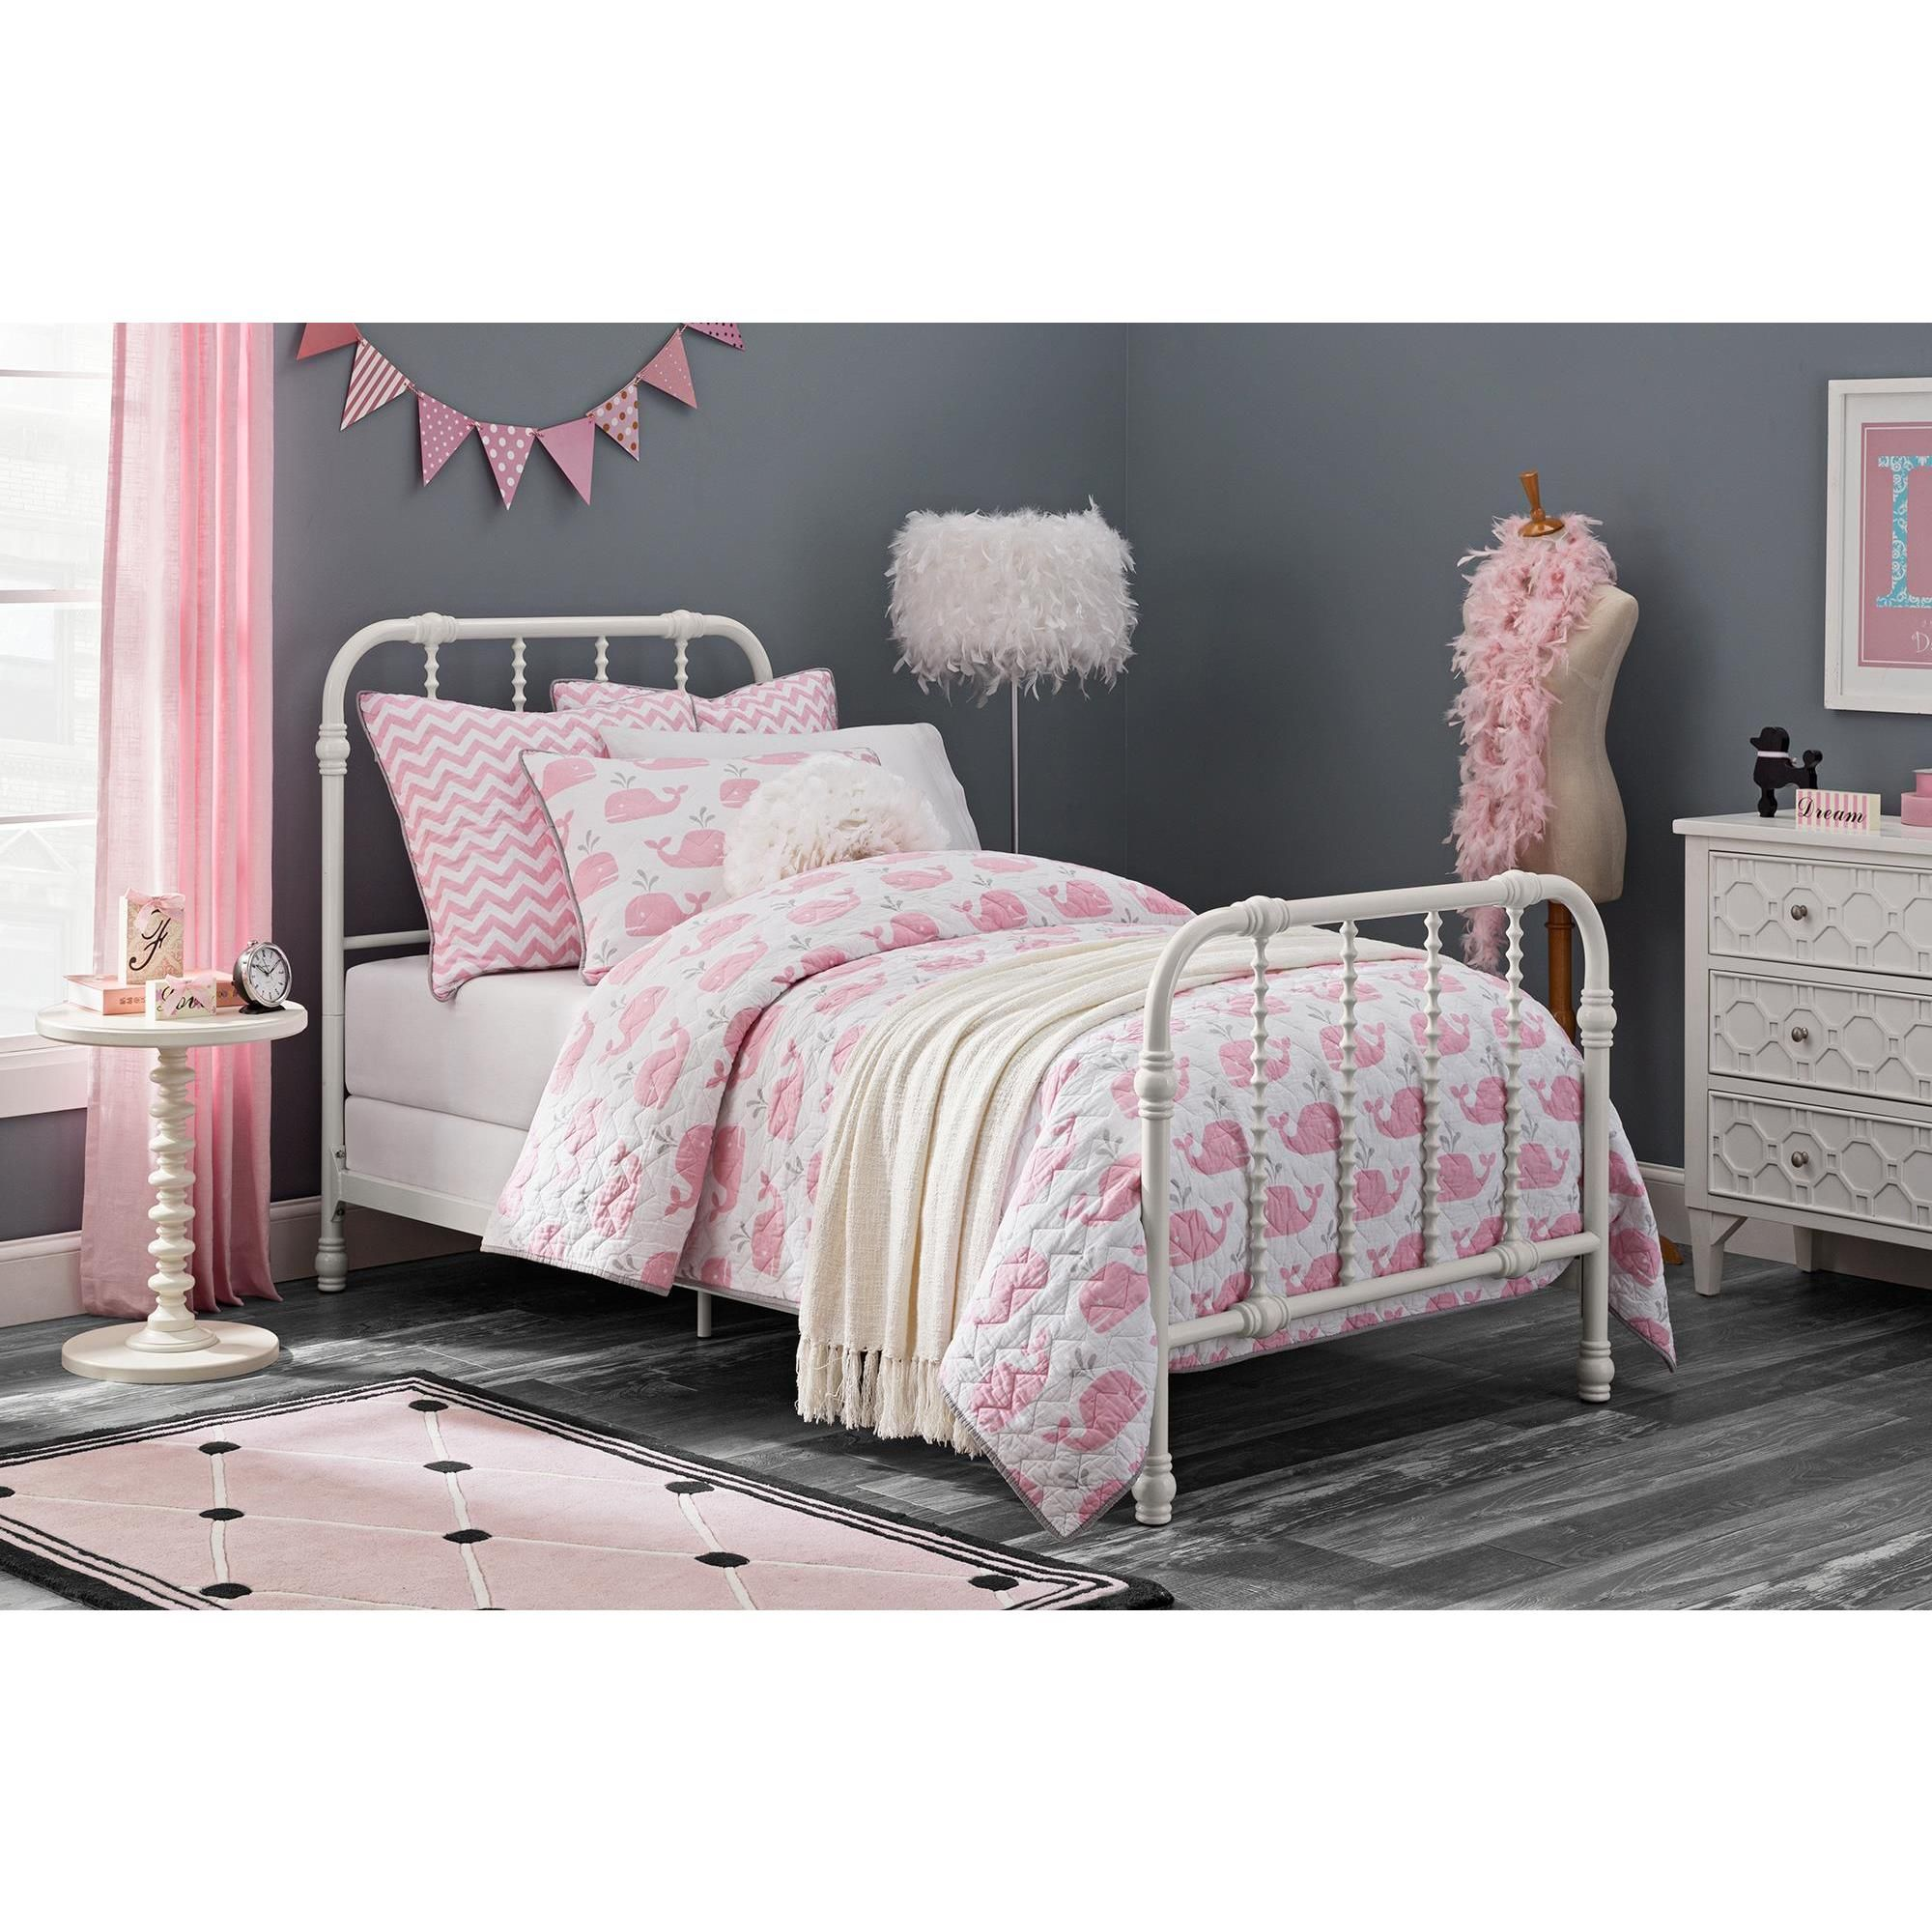 hi view room upholstered bed dc girl chair delta res hero twin girls superhero products super children roomshot